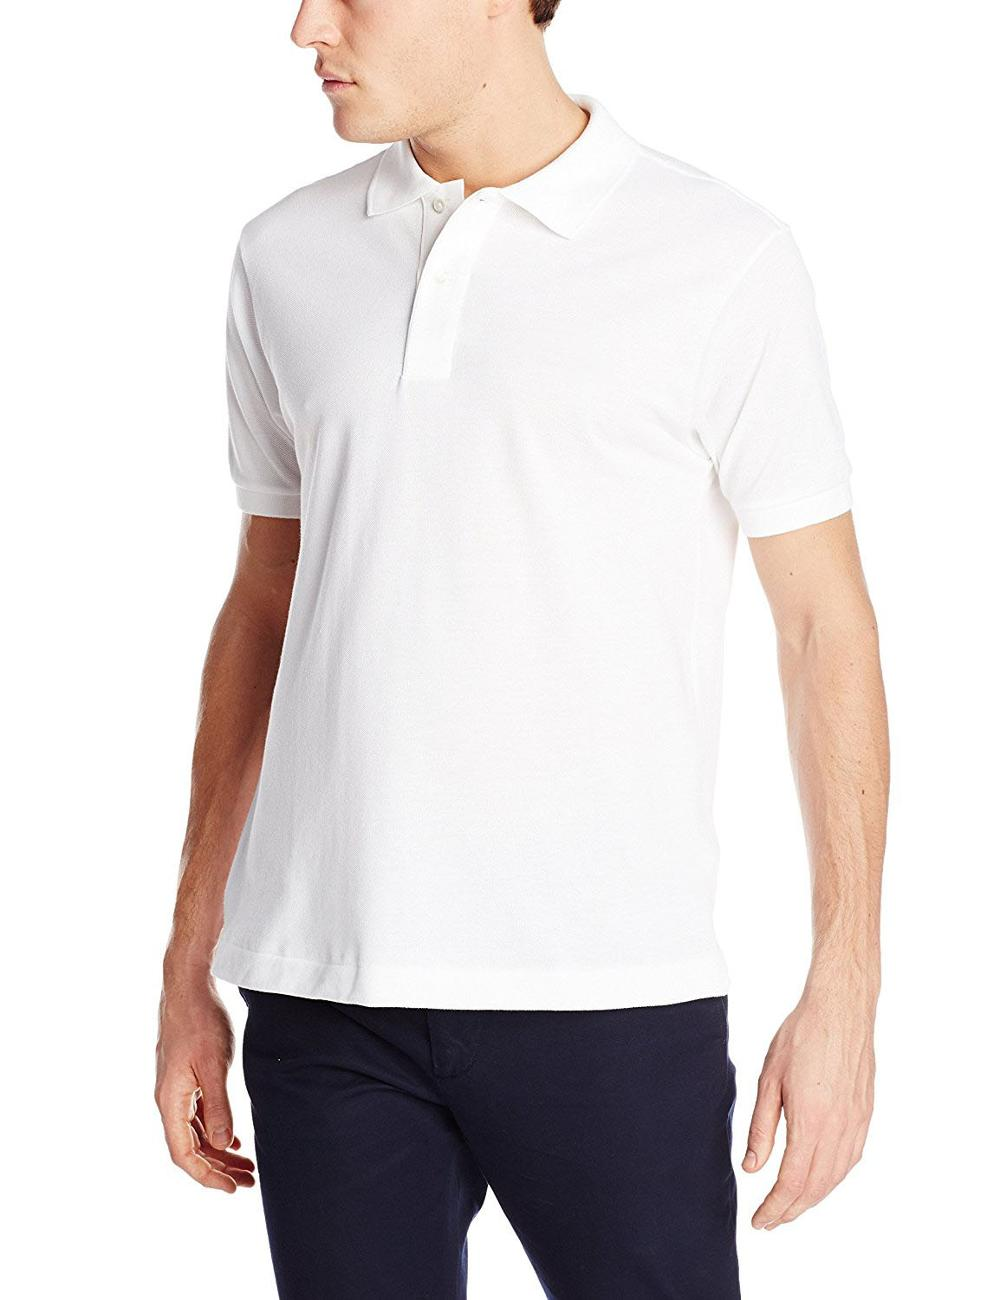 72037c85 Plain Polo Shirts Wholesale - DREAMWORKS